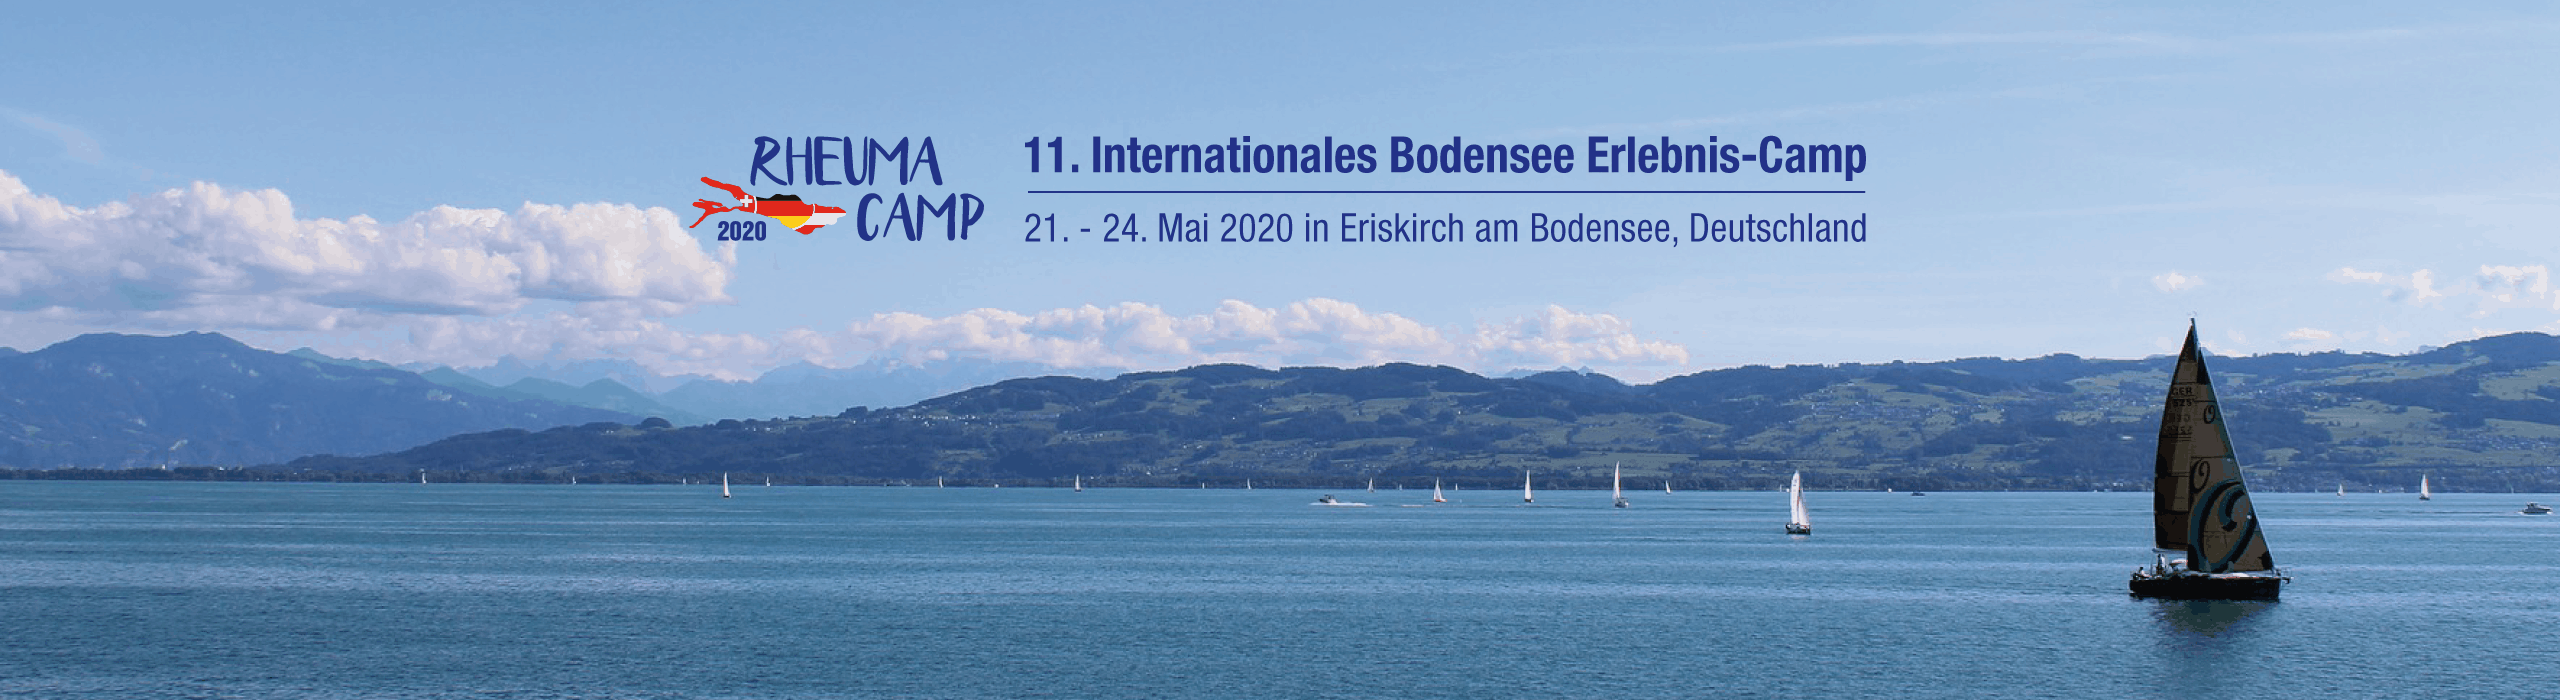 Rheuma Camp 2020, 21. – 24. Mai 2020 in Eriskirch am Bodensee, Deutschland